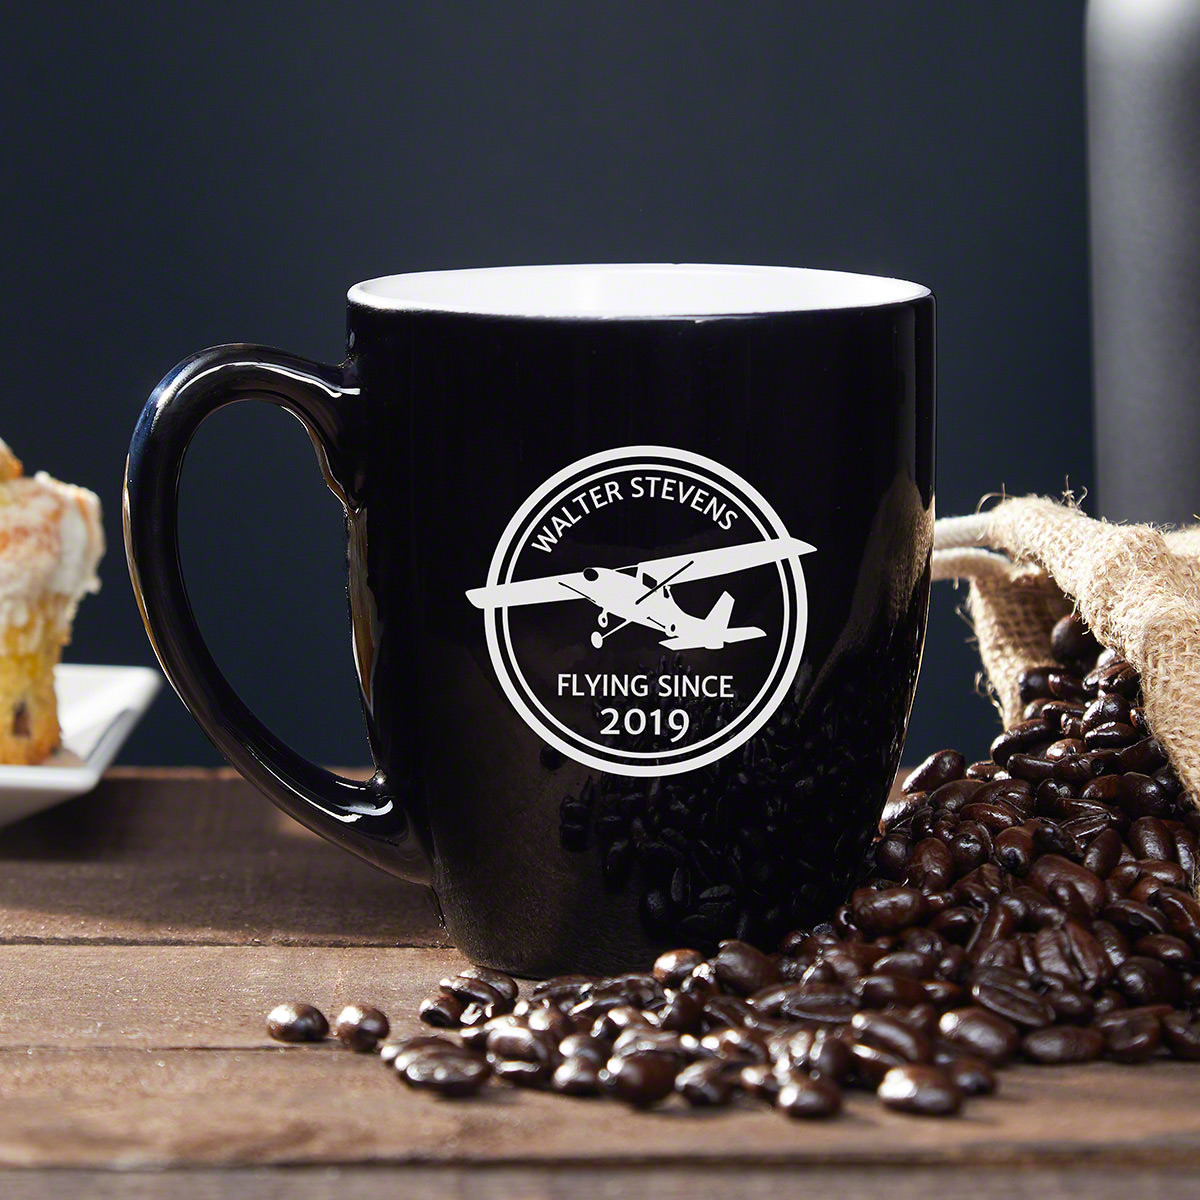 Aviators rely on coffee to stay energized and focused when they're flying all day, which makes this personalized coffee mug an excellent gift for pilots. Now he can enjoy a quality cup of Joe before taking off in style. Featuring the silhouette of a Ces #mug